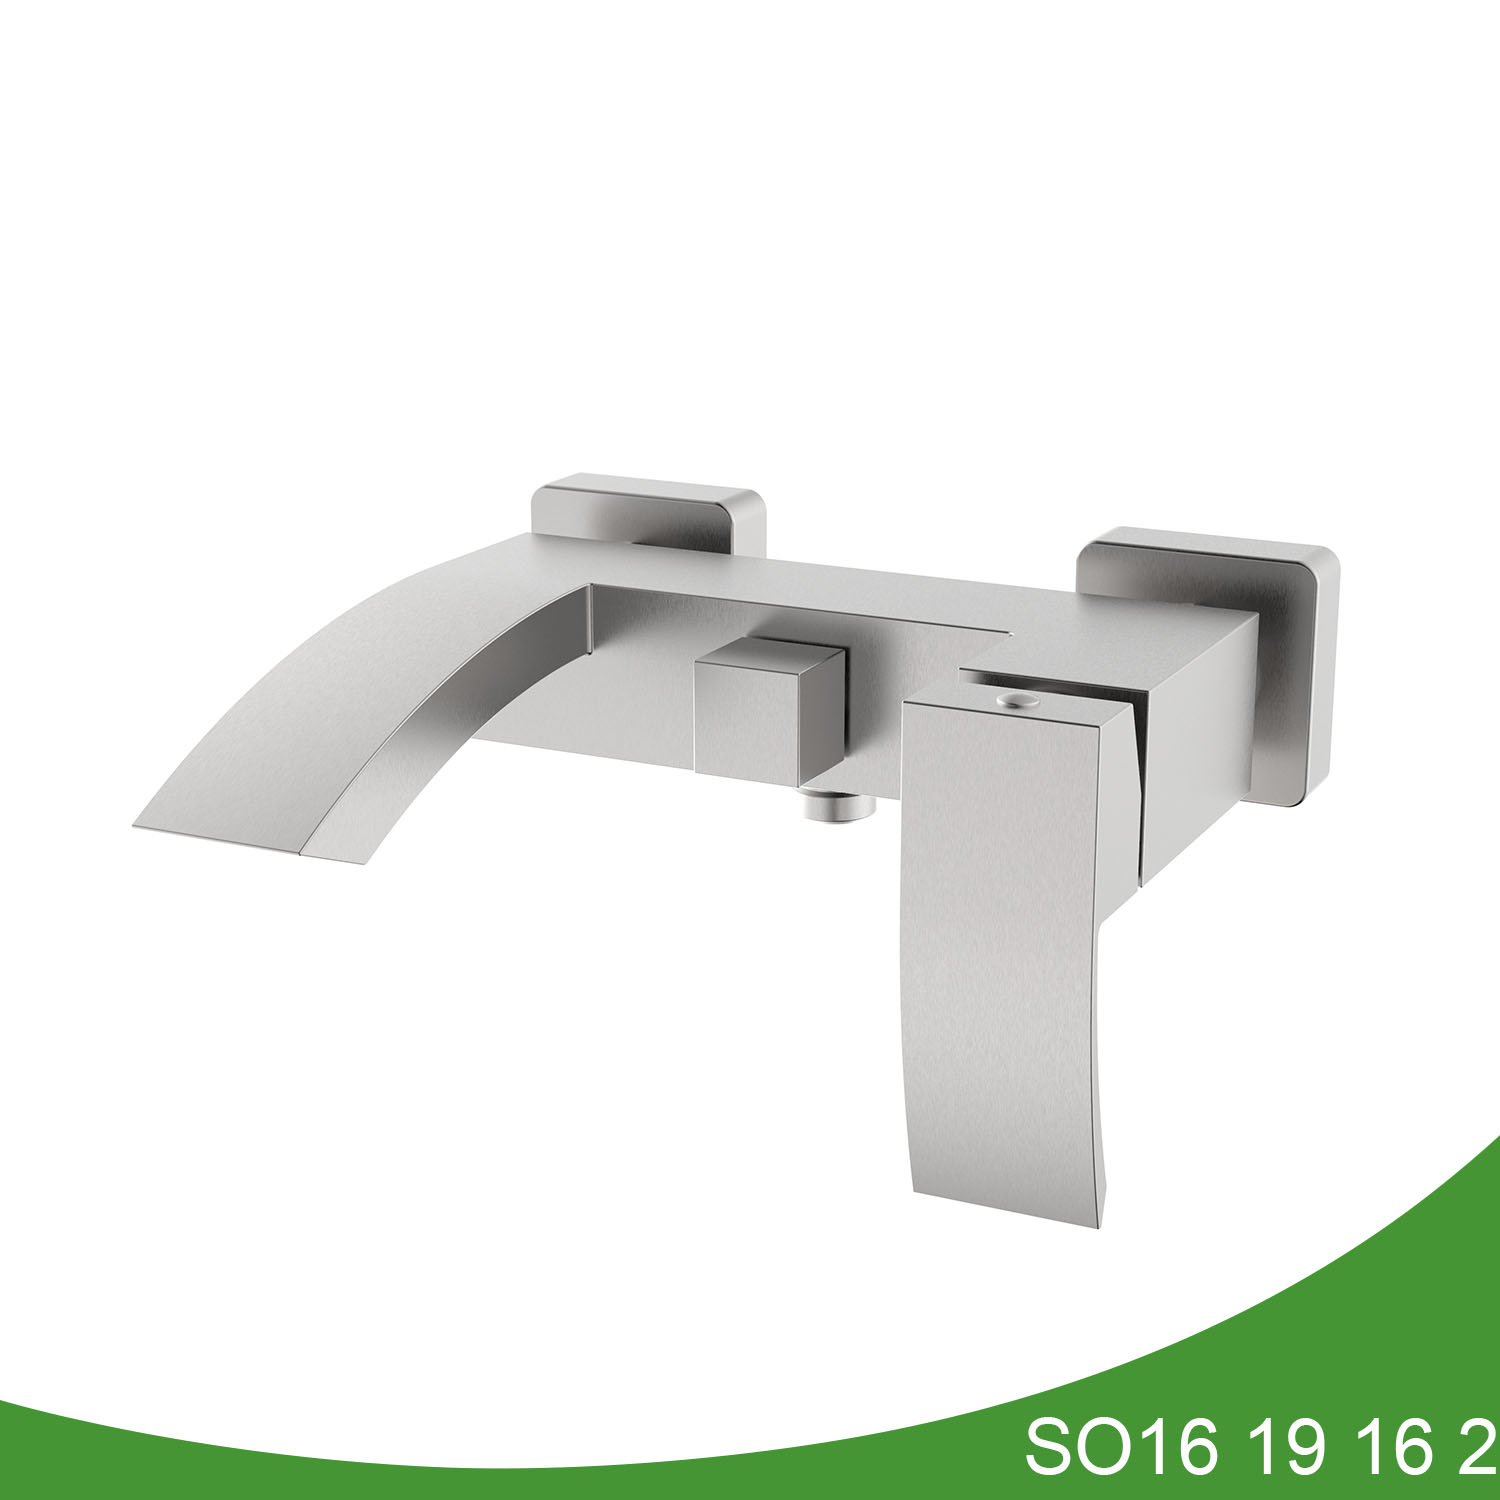 Exposed shower mixer S016 19 16 2